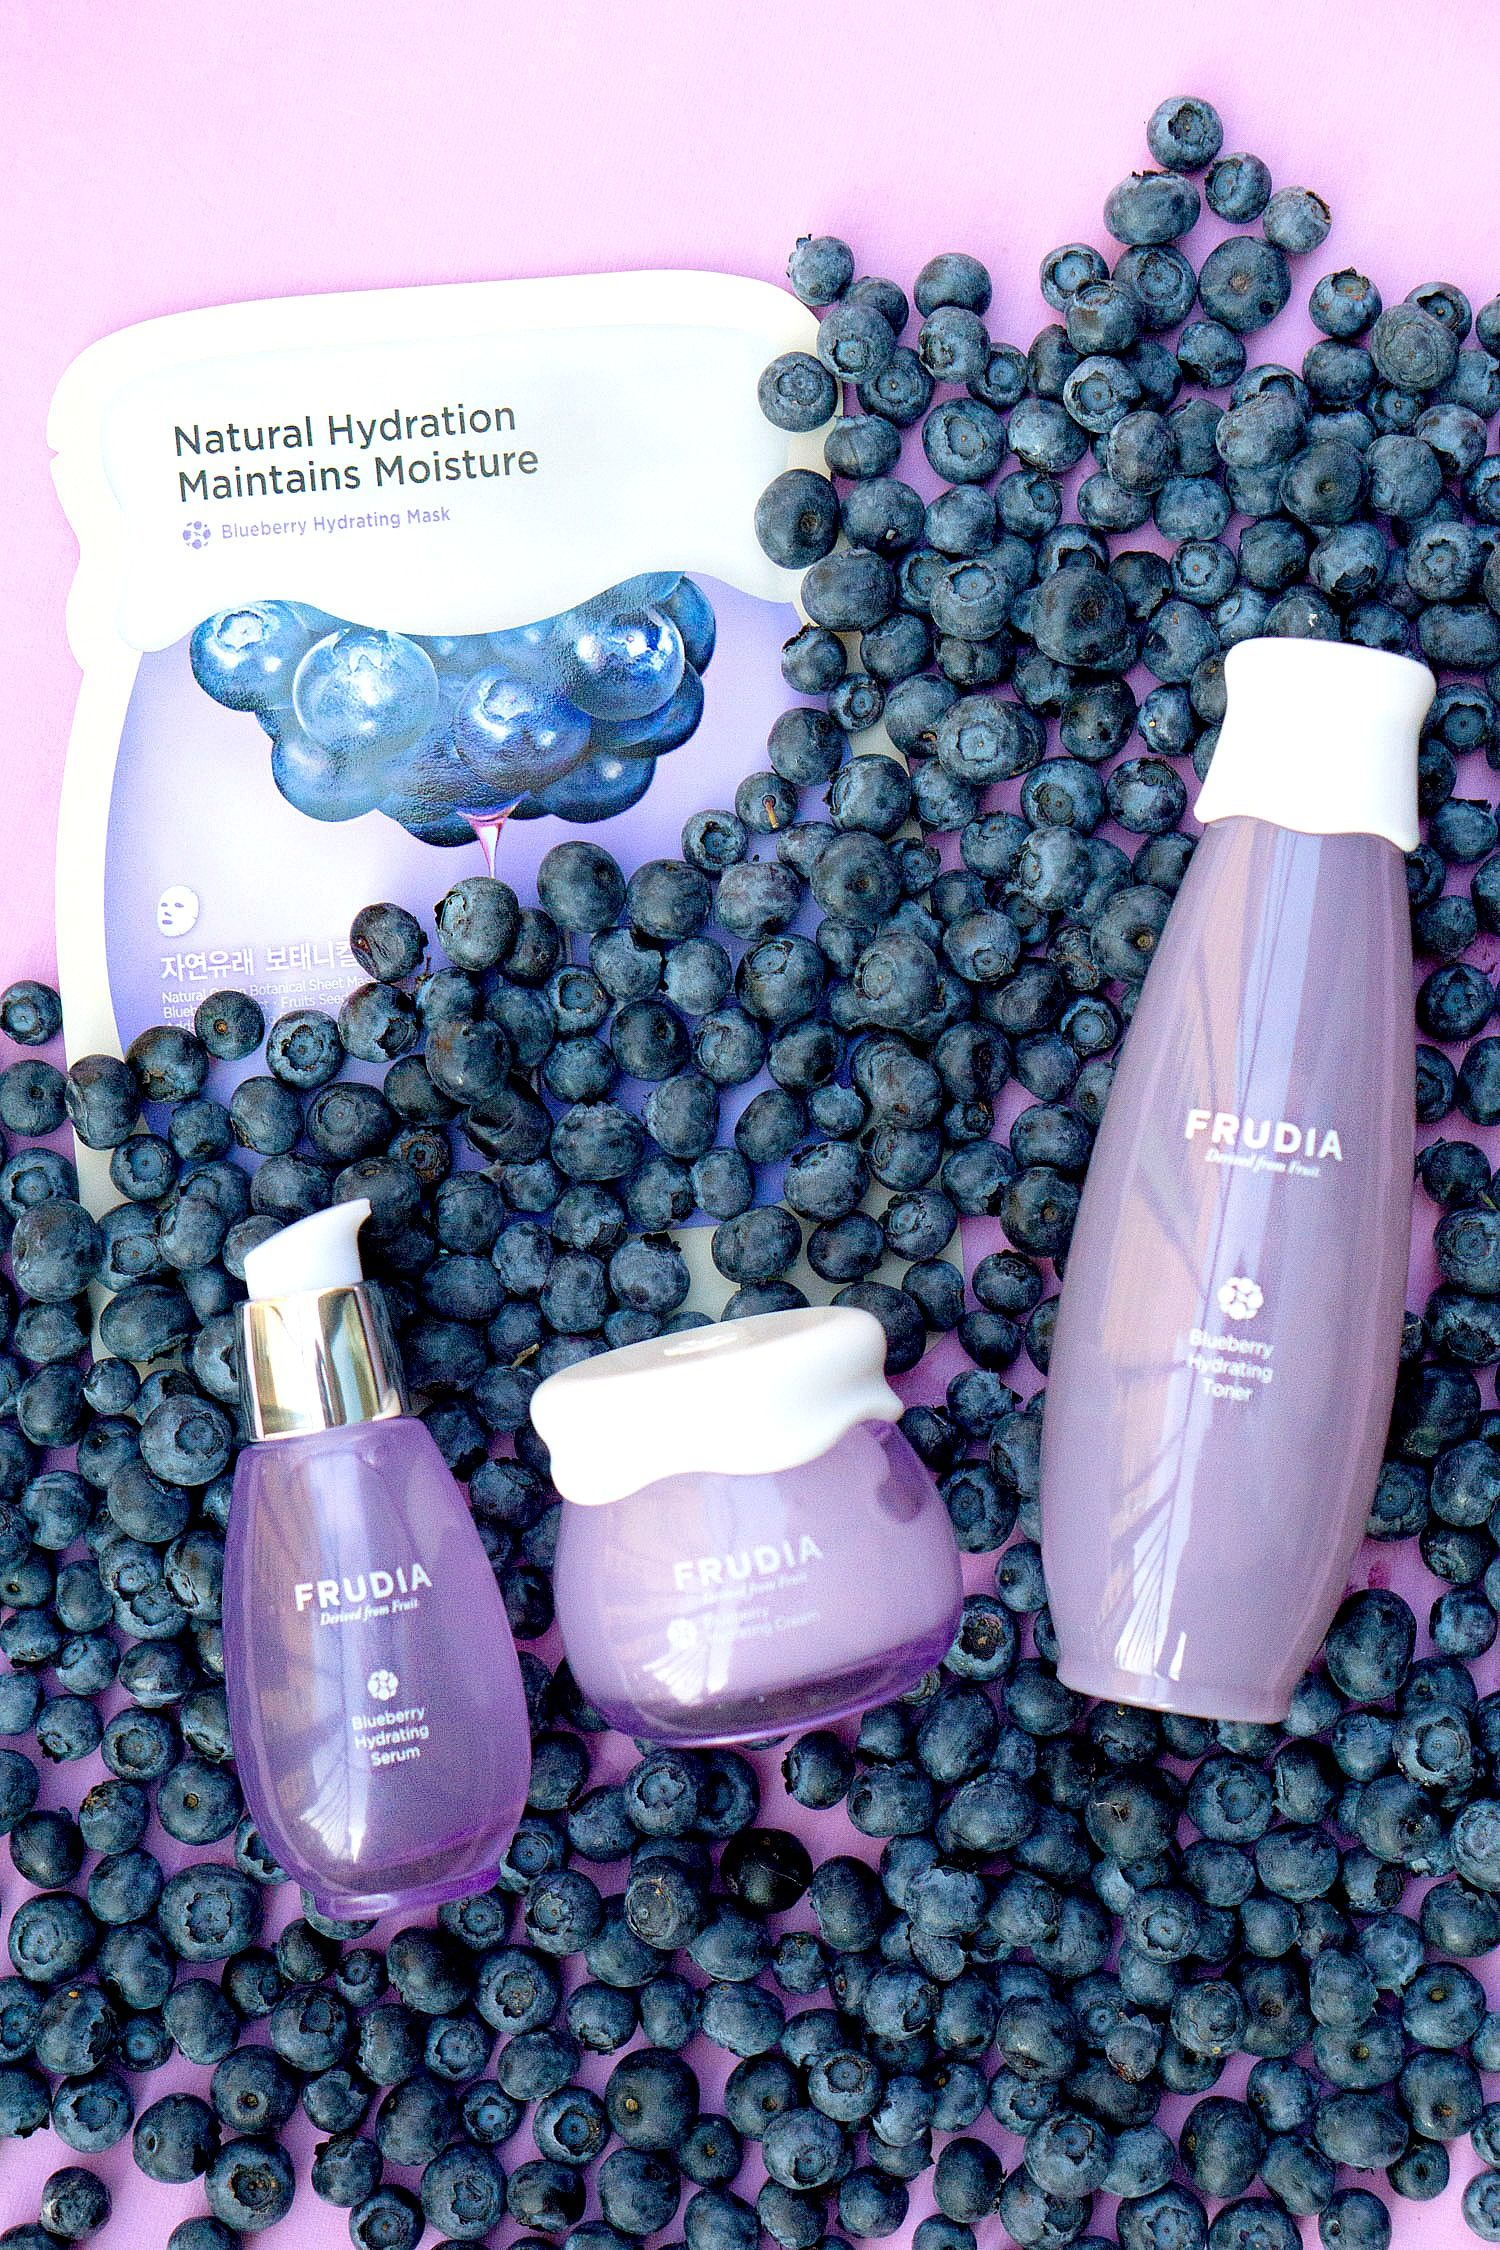 Beauty Benefits of Blueberries | + Group Blog Board Share +